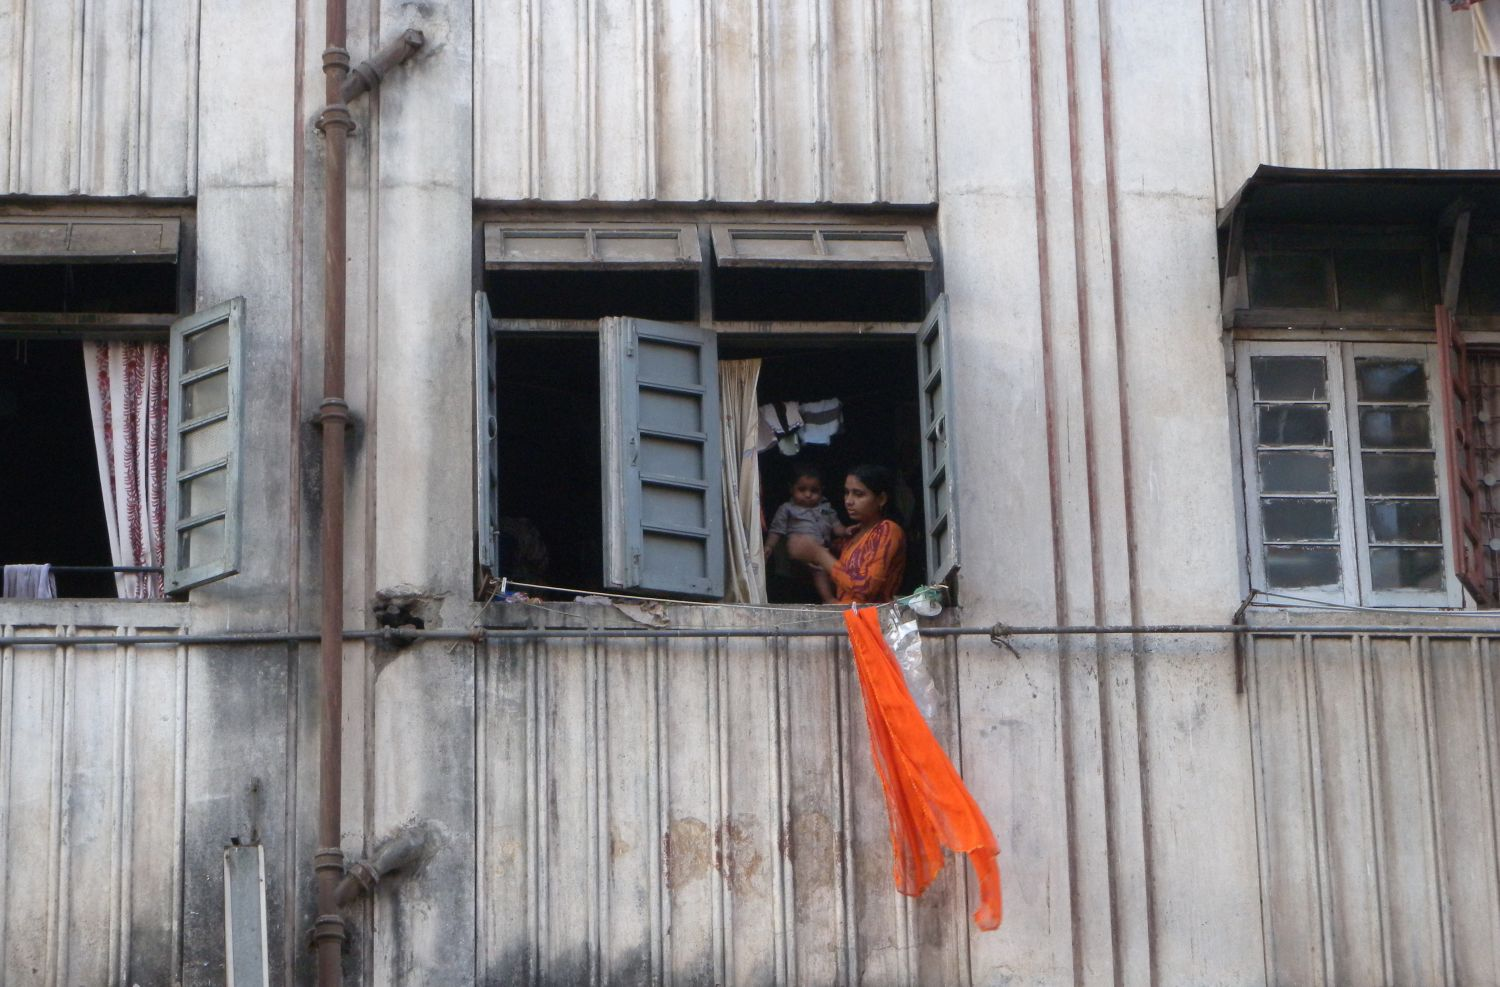 Mumbai - Bombay | Woman with baby looking out the window | Indian building in Mumbai |©sandrine cohen